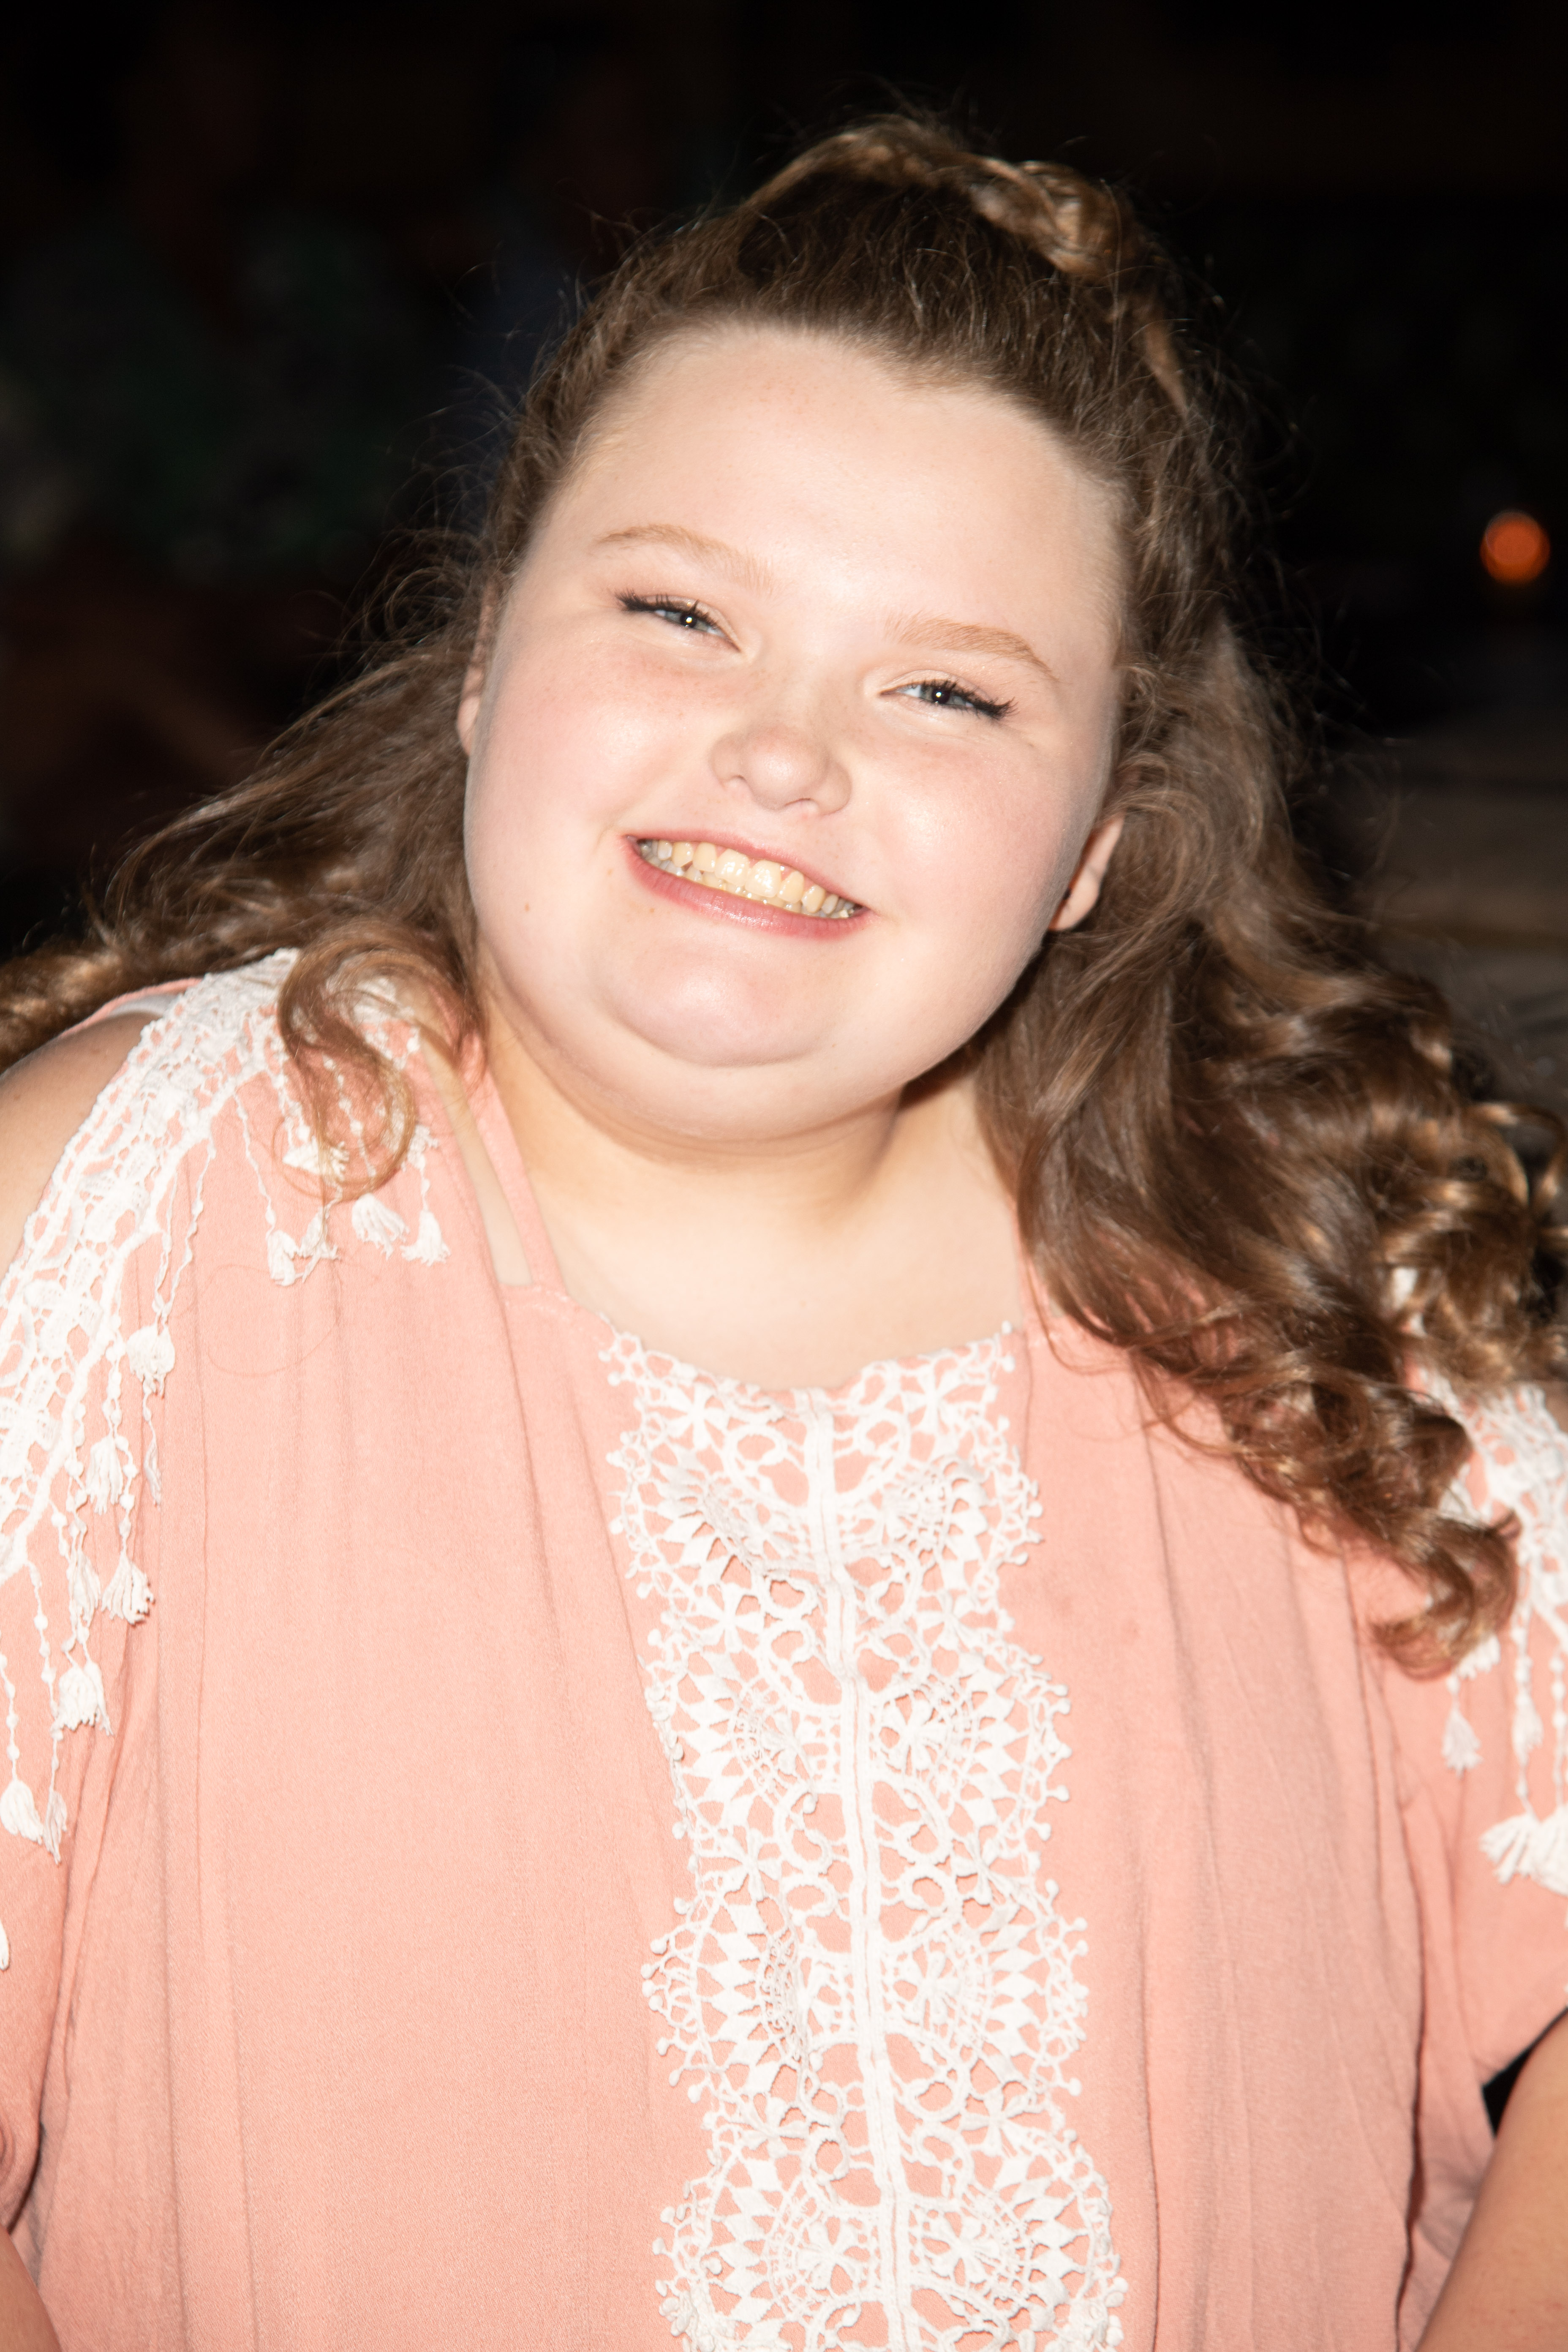 Honey Boo Boo attends the Bossip Best Dressed List Event on July 31, 2018 in Los Angeles, California.